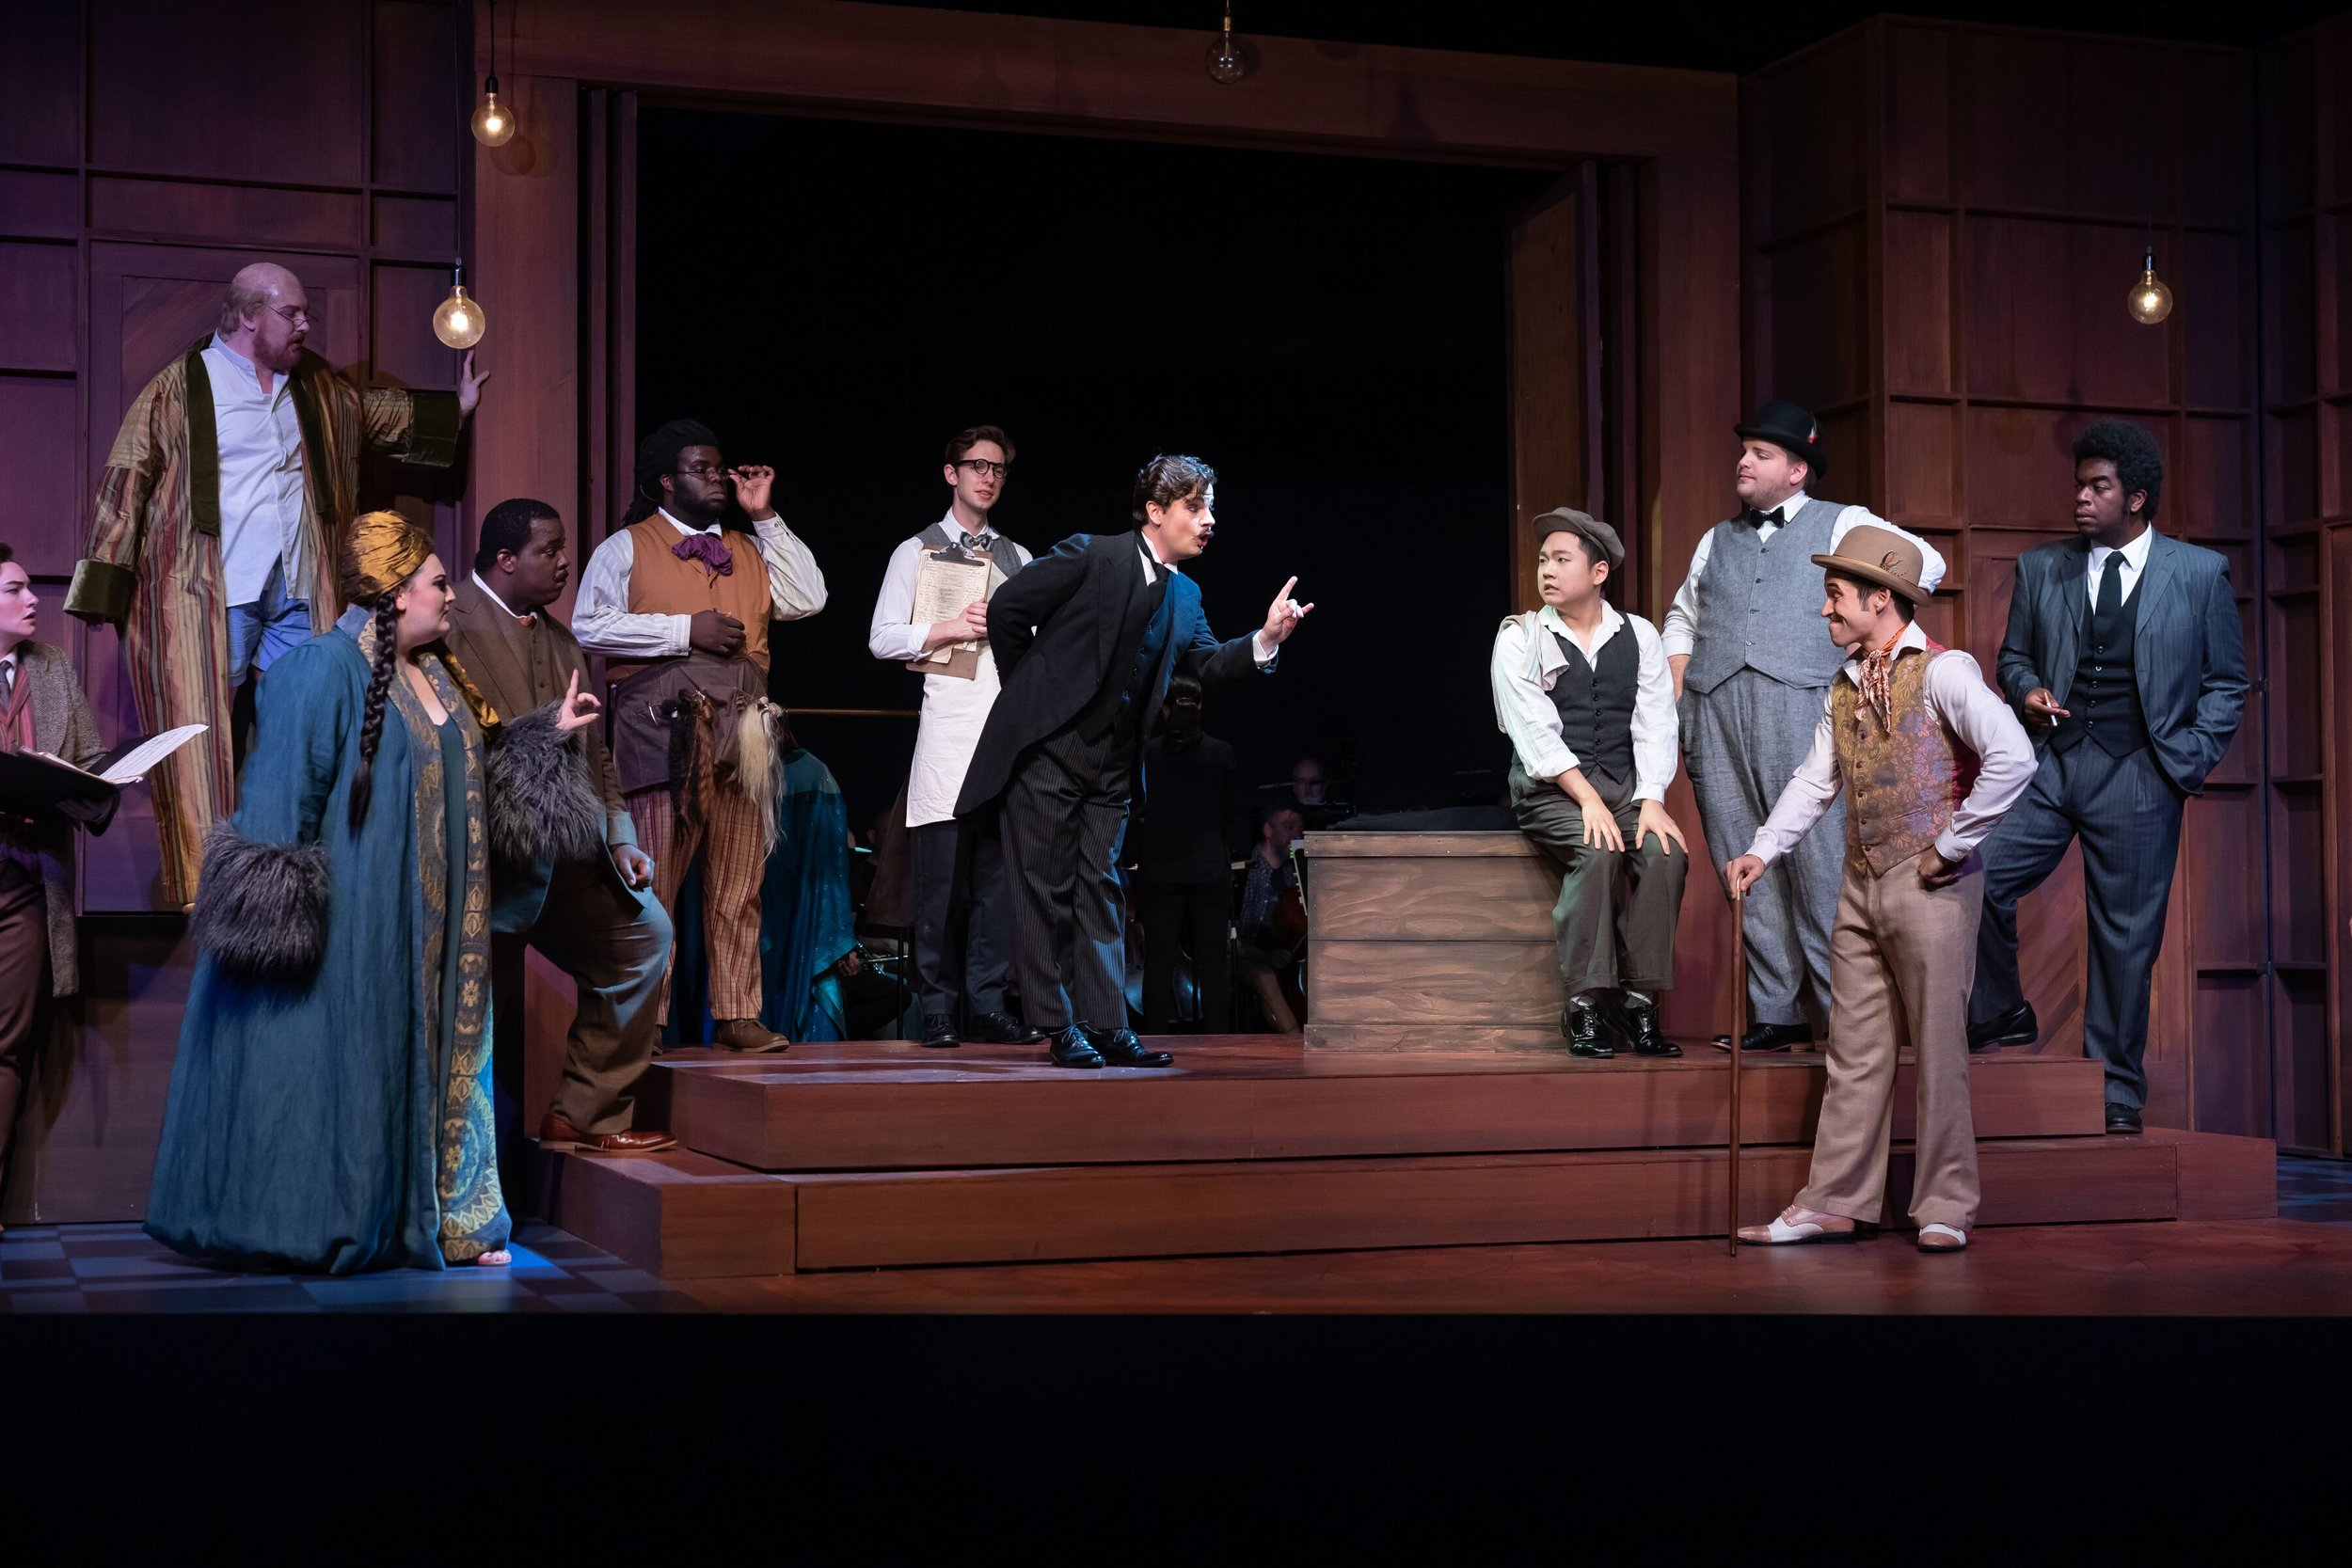 l to r : Lindsay Kate Brown (Composer), Ian Koziara (Tenor), Alexandria Shiner (Prima Donna), Joshua Conyers (Music Master), Wilford Kelly (Wigmaker), Jeremy Harr (Lackey), Conor McDonald (Major-Domo), Seiyoung Kim (Brighella), Victor Cardamone (Scaramuccio), Ian McEuen (Dancing Master) and Ron Dukes (Truffaldin) in the Prologue. Photo by Scott Suchman; courtesy of Wolf Trap Opera.